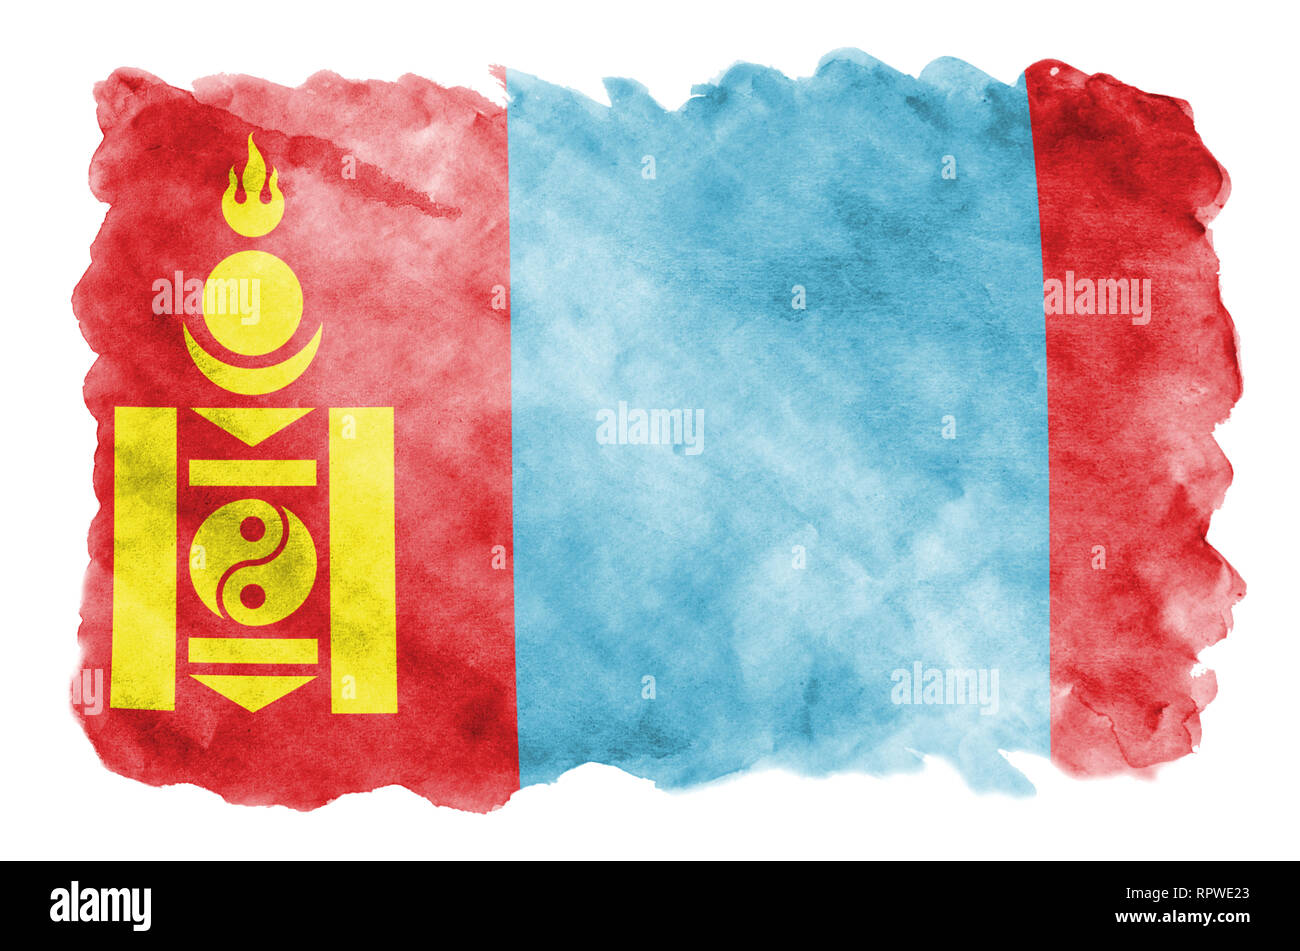 Mongolia flag  is depicted in liquid watercolor style isolated on white background. Careless paint shading with image of national flag. Independence D - Stock Image